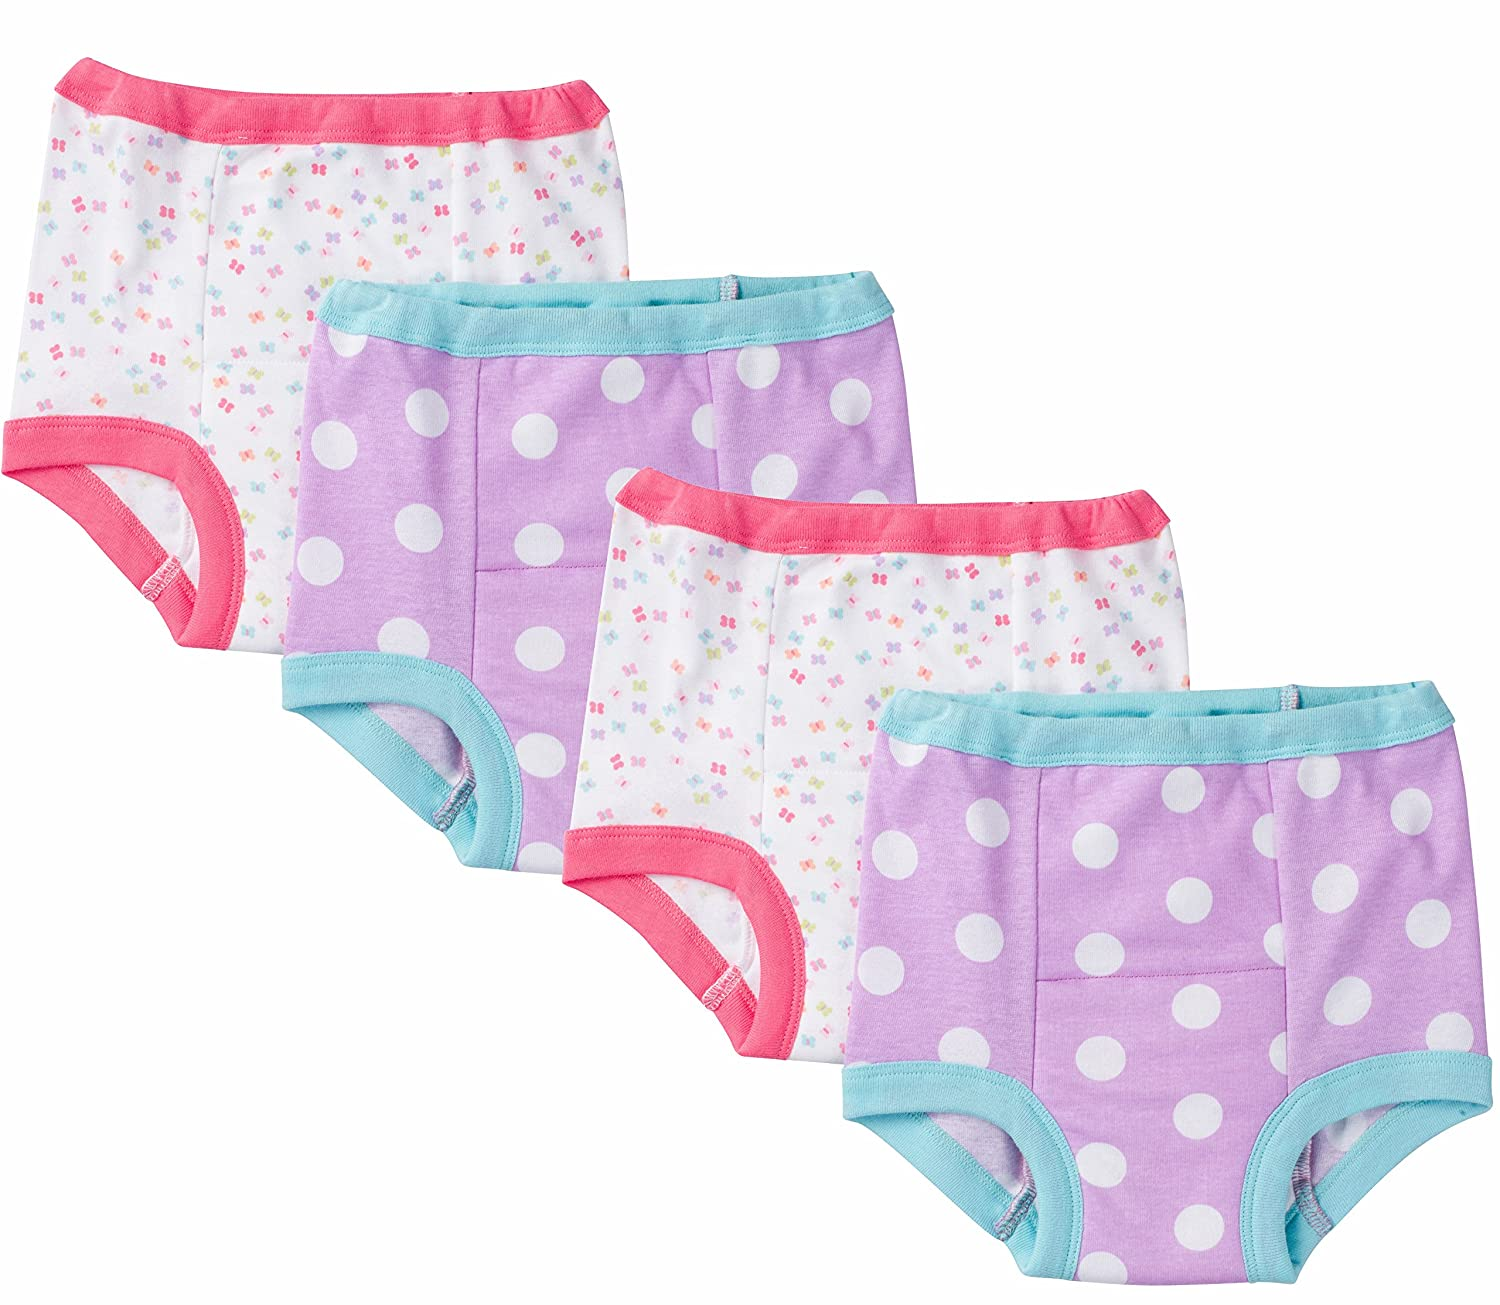 Gerber Toddler Girls 2-Pack Pink Butterfly Training Pants Size 3T Baby Clothes